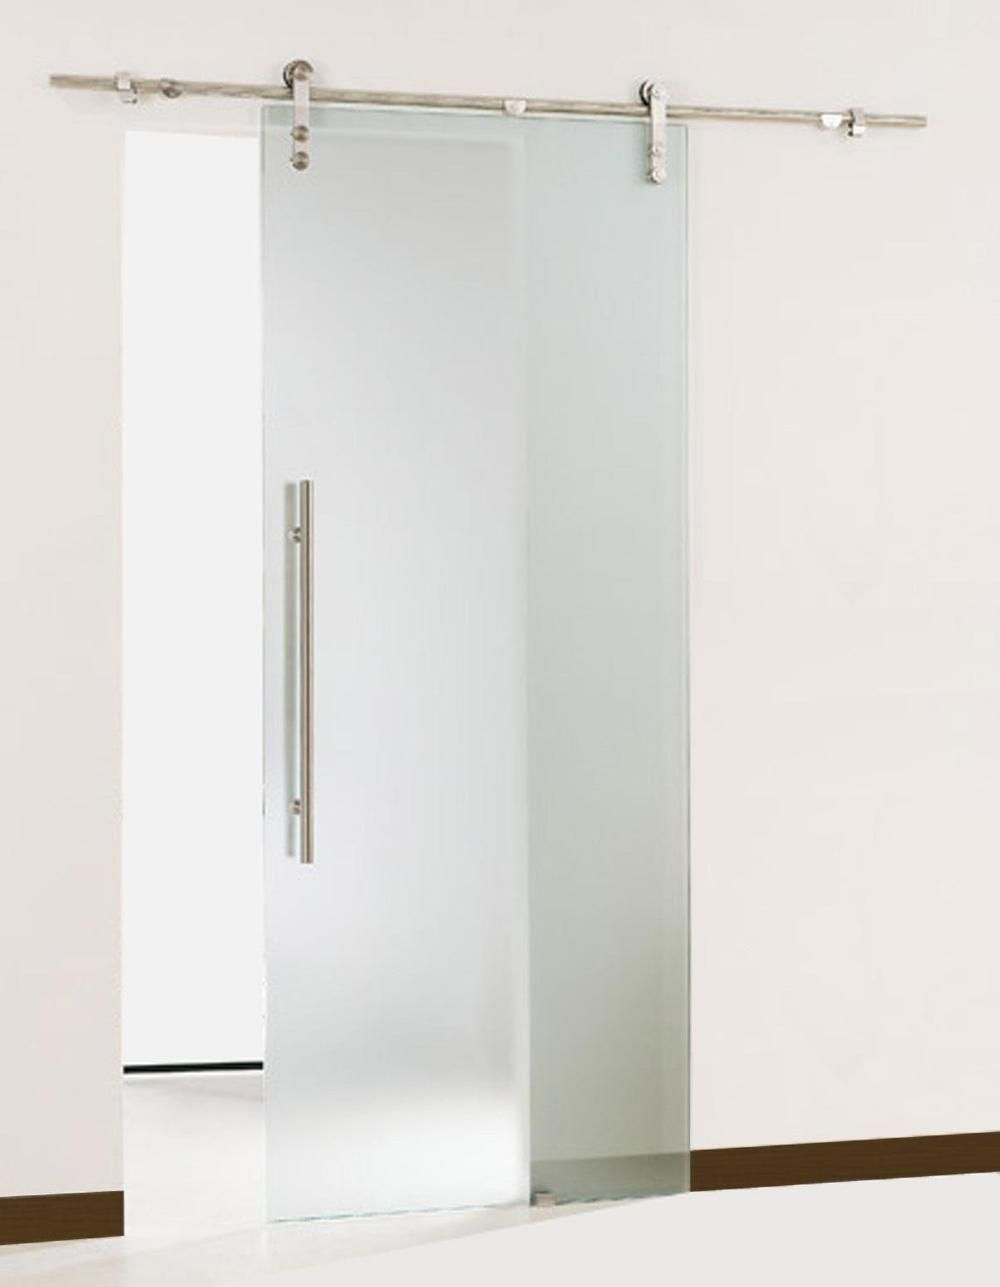 Single Pocket Doors Glass free shipping-gsd01 modern sliding glass barn door stainless steel